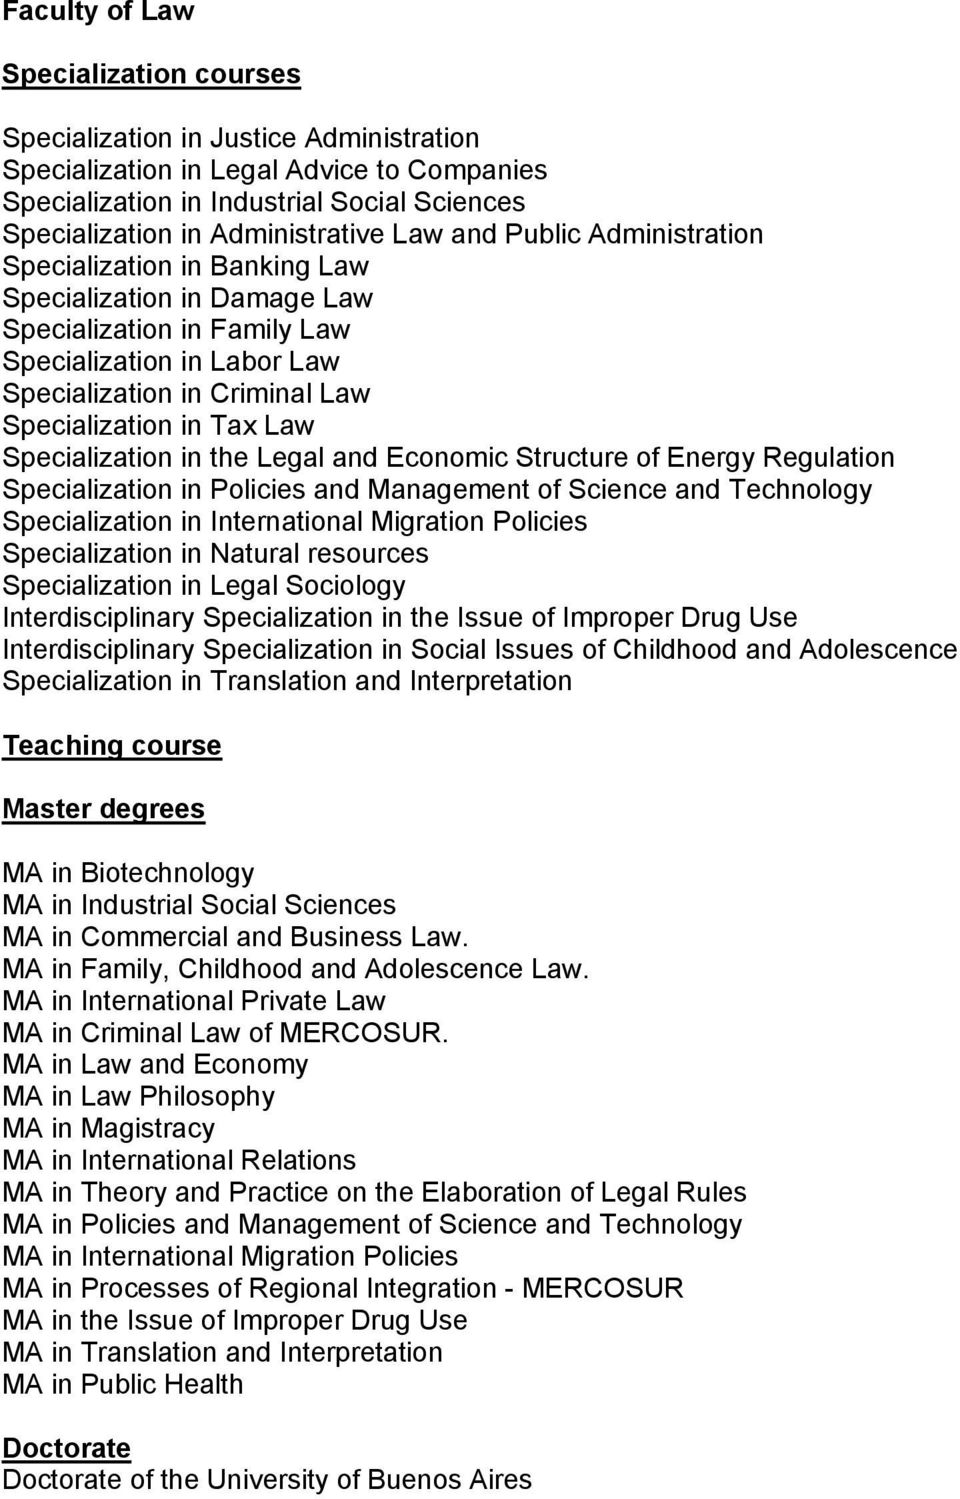 Specialization in Tax Law Specialization in the Legal and Economic Structure of Energy Regulation Specialization in Policies and Management of Science and Technology Specialization in International